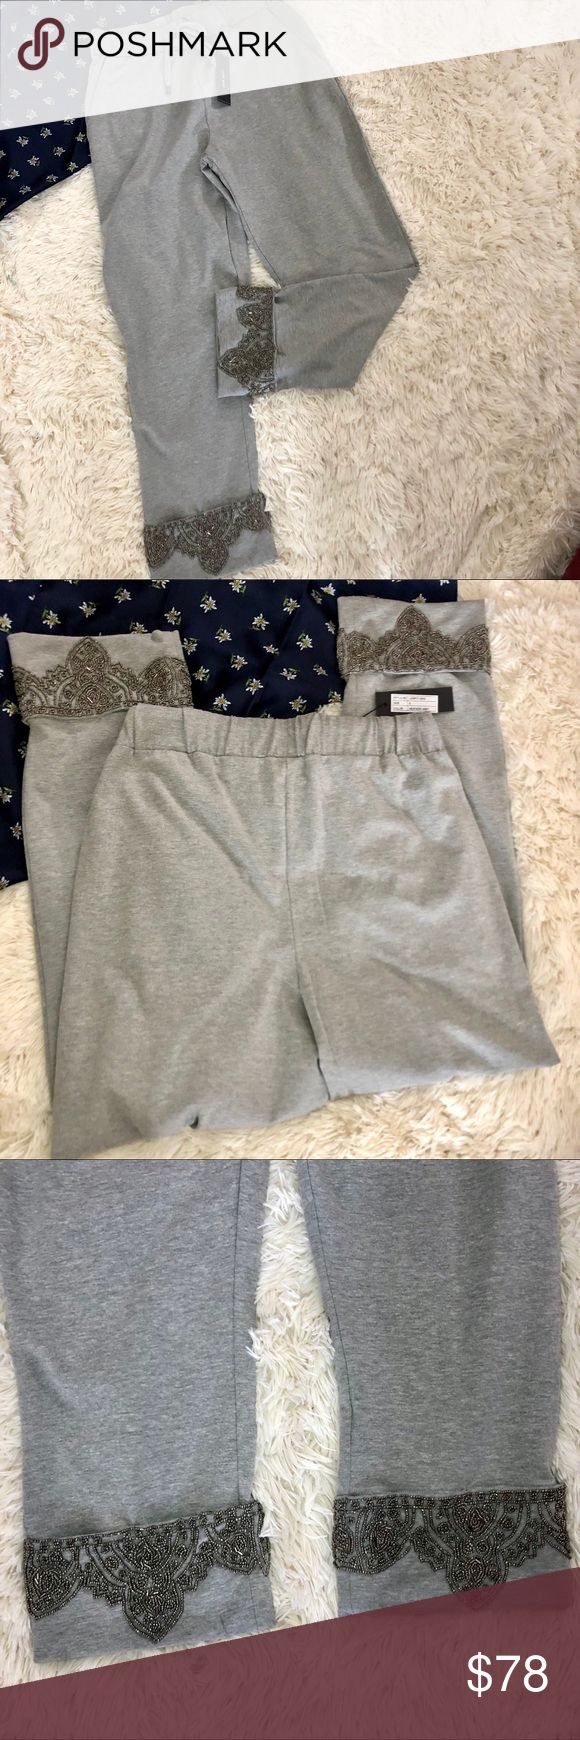 "NWT Love Sam heathered grey Embellished Pants S NWT Anthropologie love Sam Grey Embellished tie waist pant Size Small. Definitely an oversized fit. Flat slant front pockets. Ultra soft, 28"" inseam. Would be perfect with wedge heels and an oversized cardigan! Reasonable offers always accepted. Anthropologie Pants"